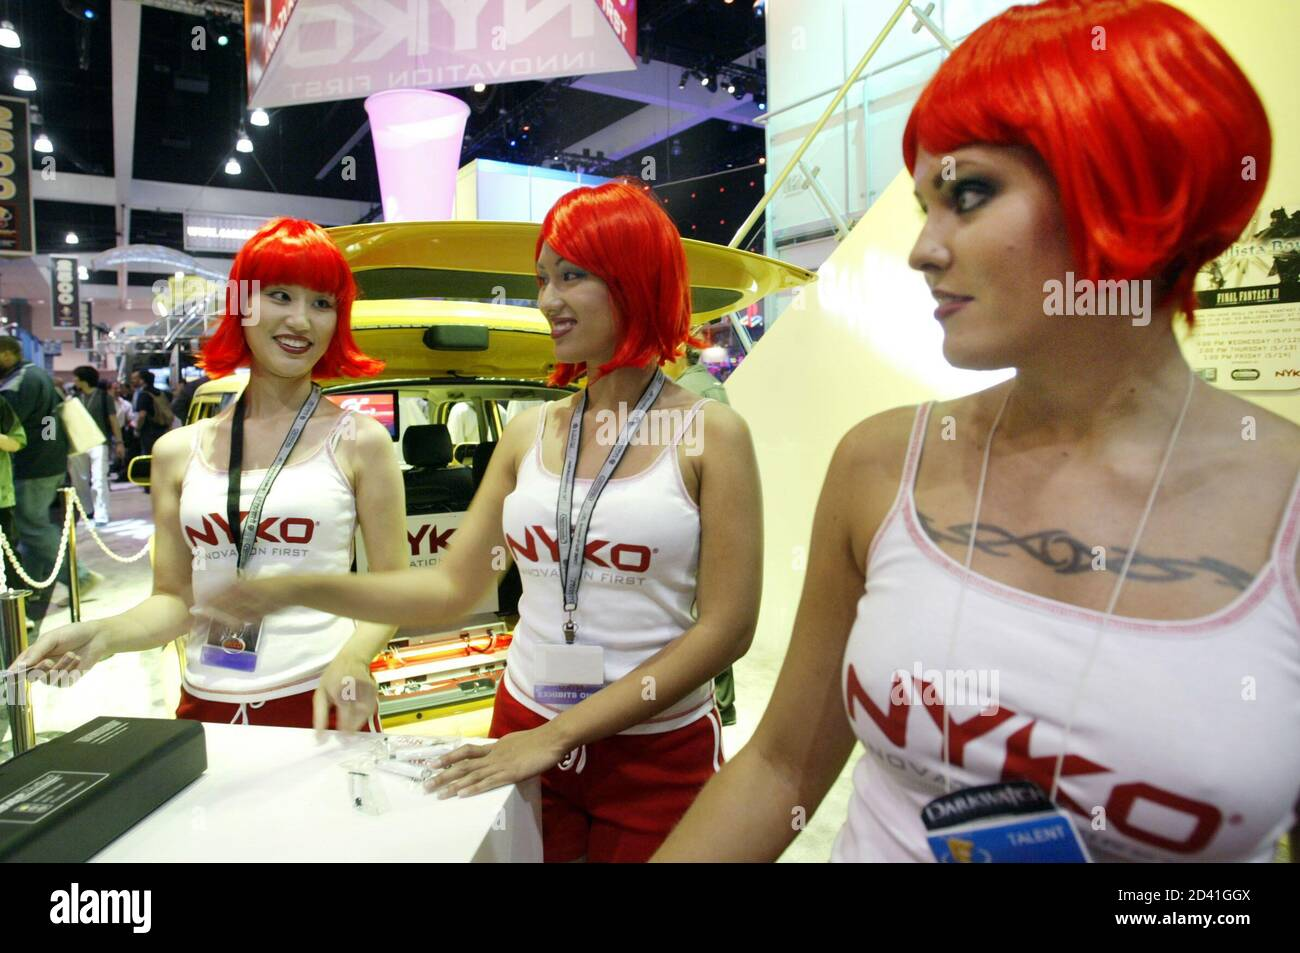 Red headed models Sindy Wei (L), Julie Anne Rose (C) and Letanya Tadlock (R) work the display for Nyko Technologies at the Electronic Entertainment Expo at the Convention Center in Los Angeles May 13, 2004. Nyko Technologies makes peripherals for interactive entertainment, personal computing and consumer electronics products. REUTERS/Robert Galbraith  RG Foto Stock